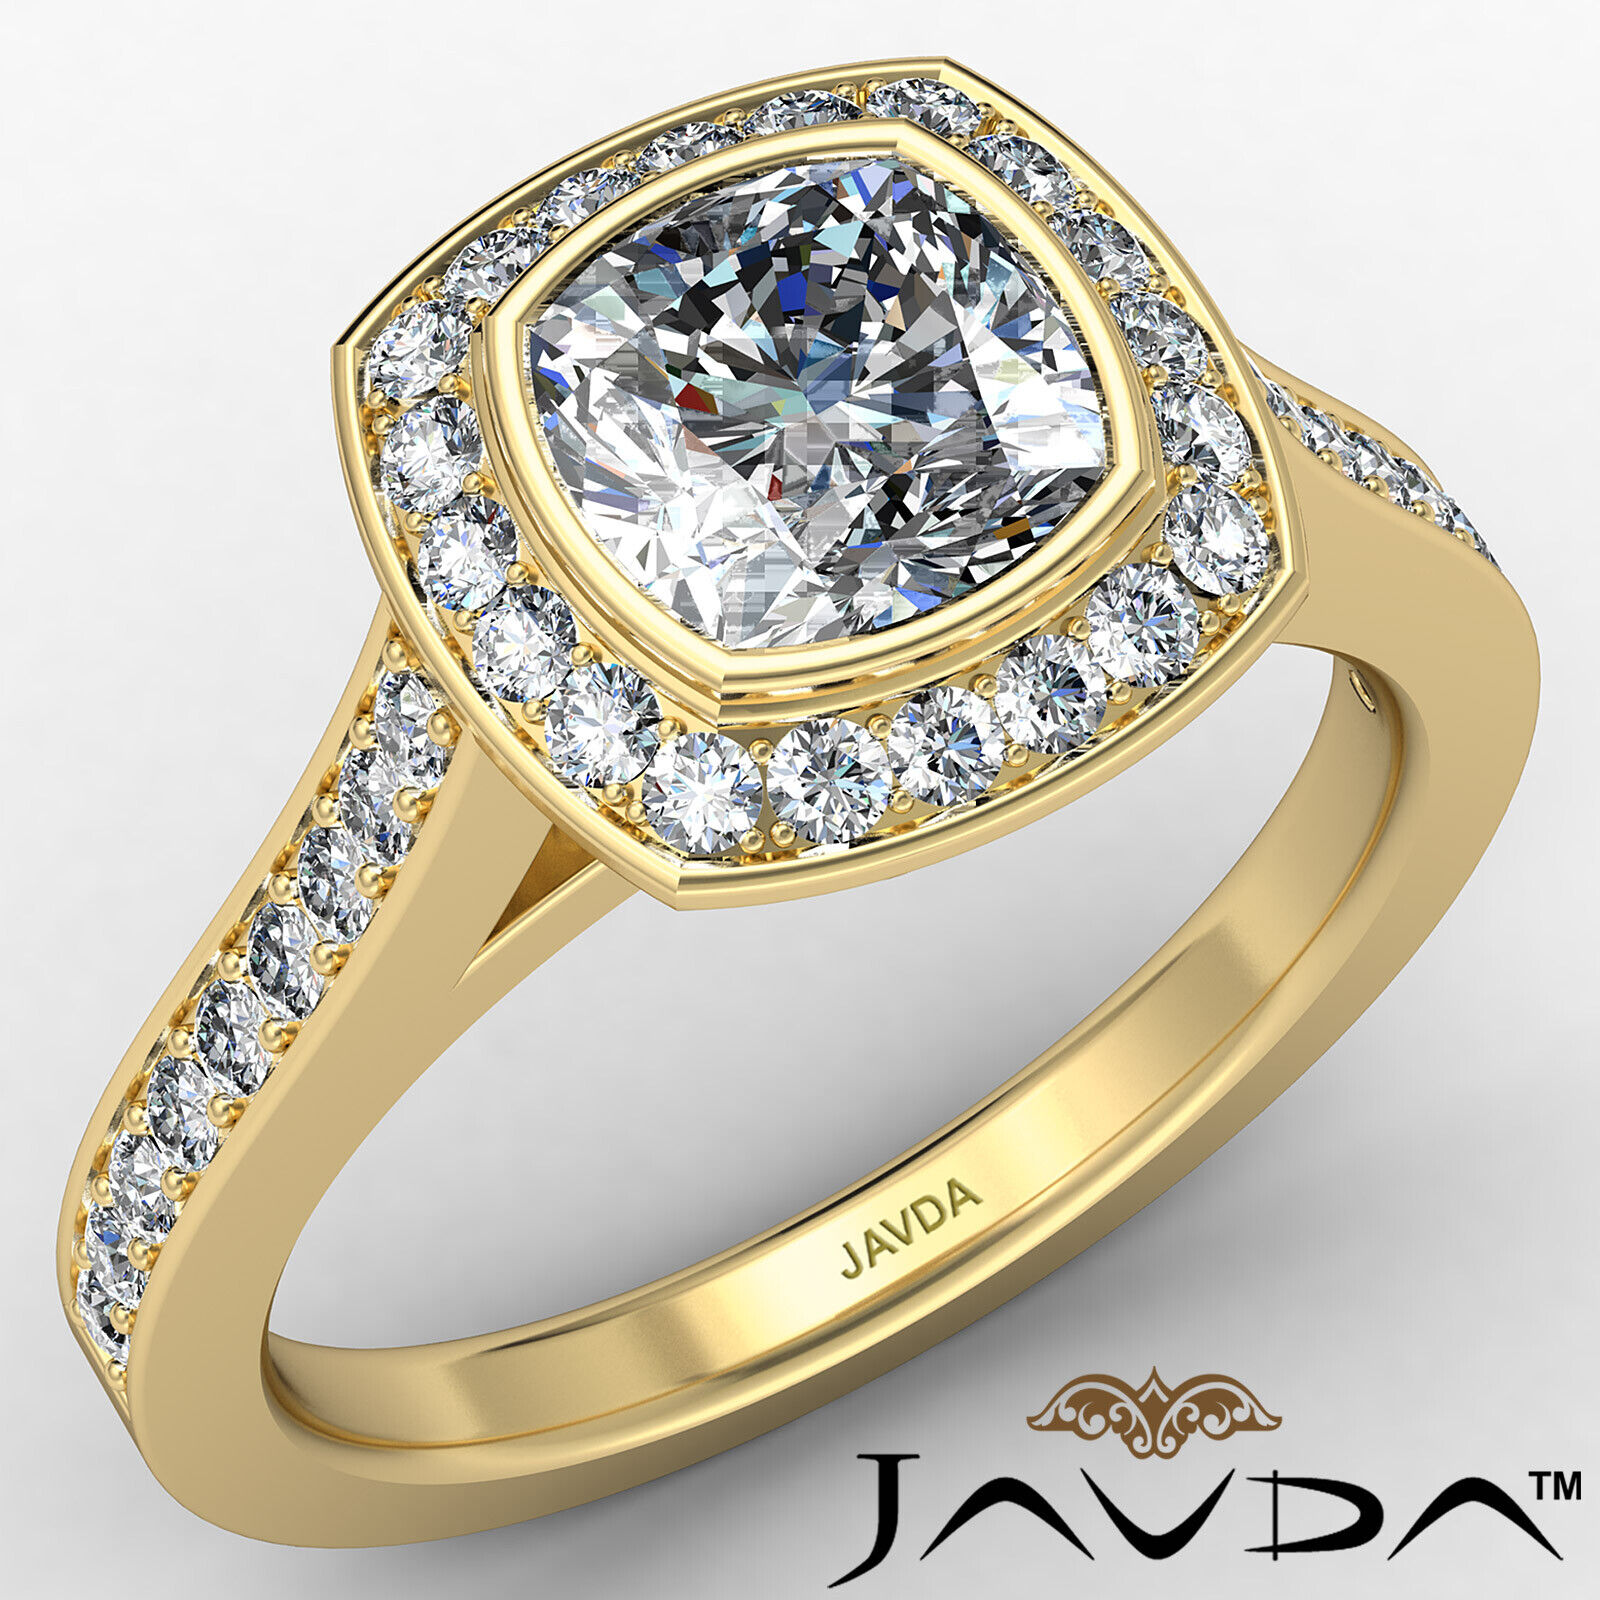 Micro Halo Cushion Diamond Engagement Ring GIA H Color & VS1 clarity 1.4 ctw 1